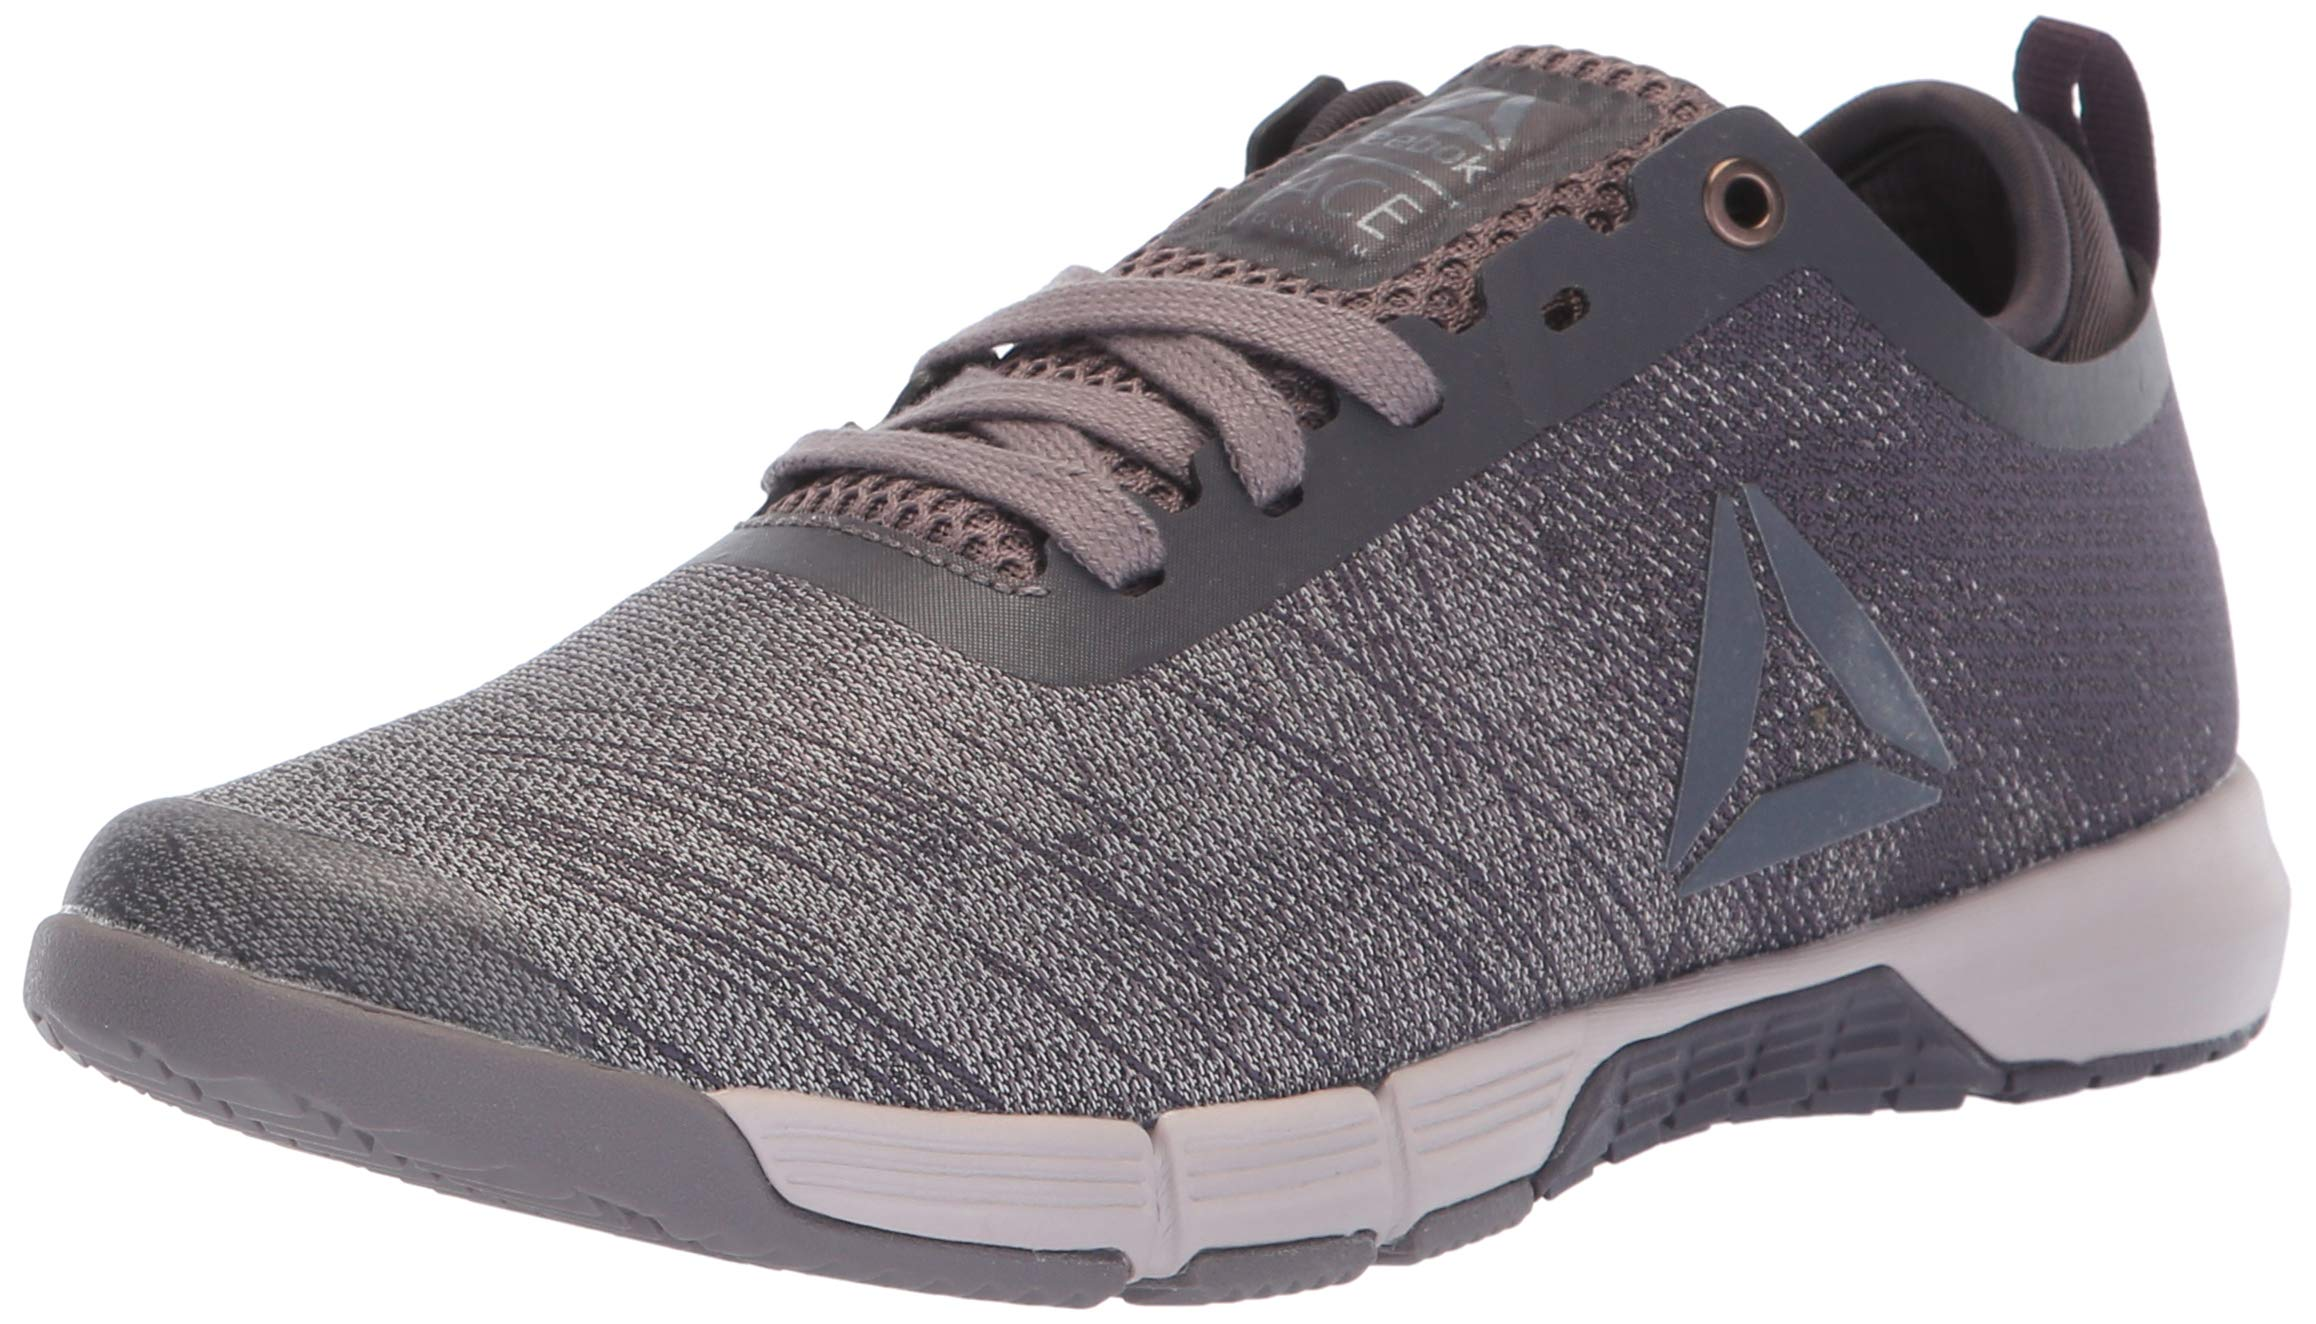 Reebok Women's Speed Her TR Cross Trainer, face-Almost Grey/Smokyvolc, 7 M US by Reebok